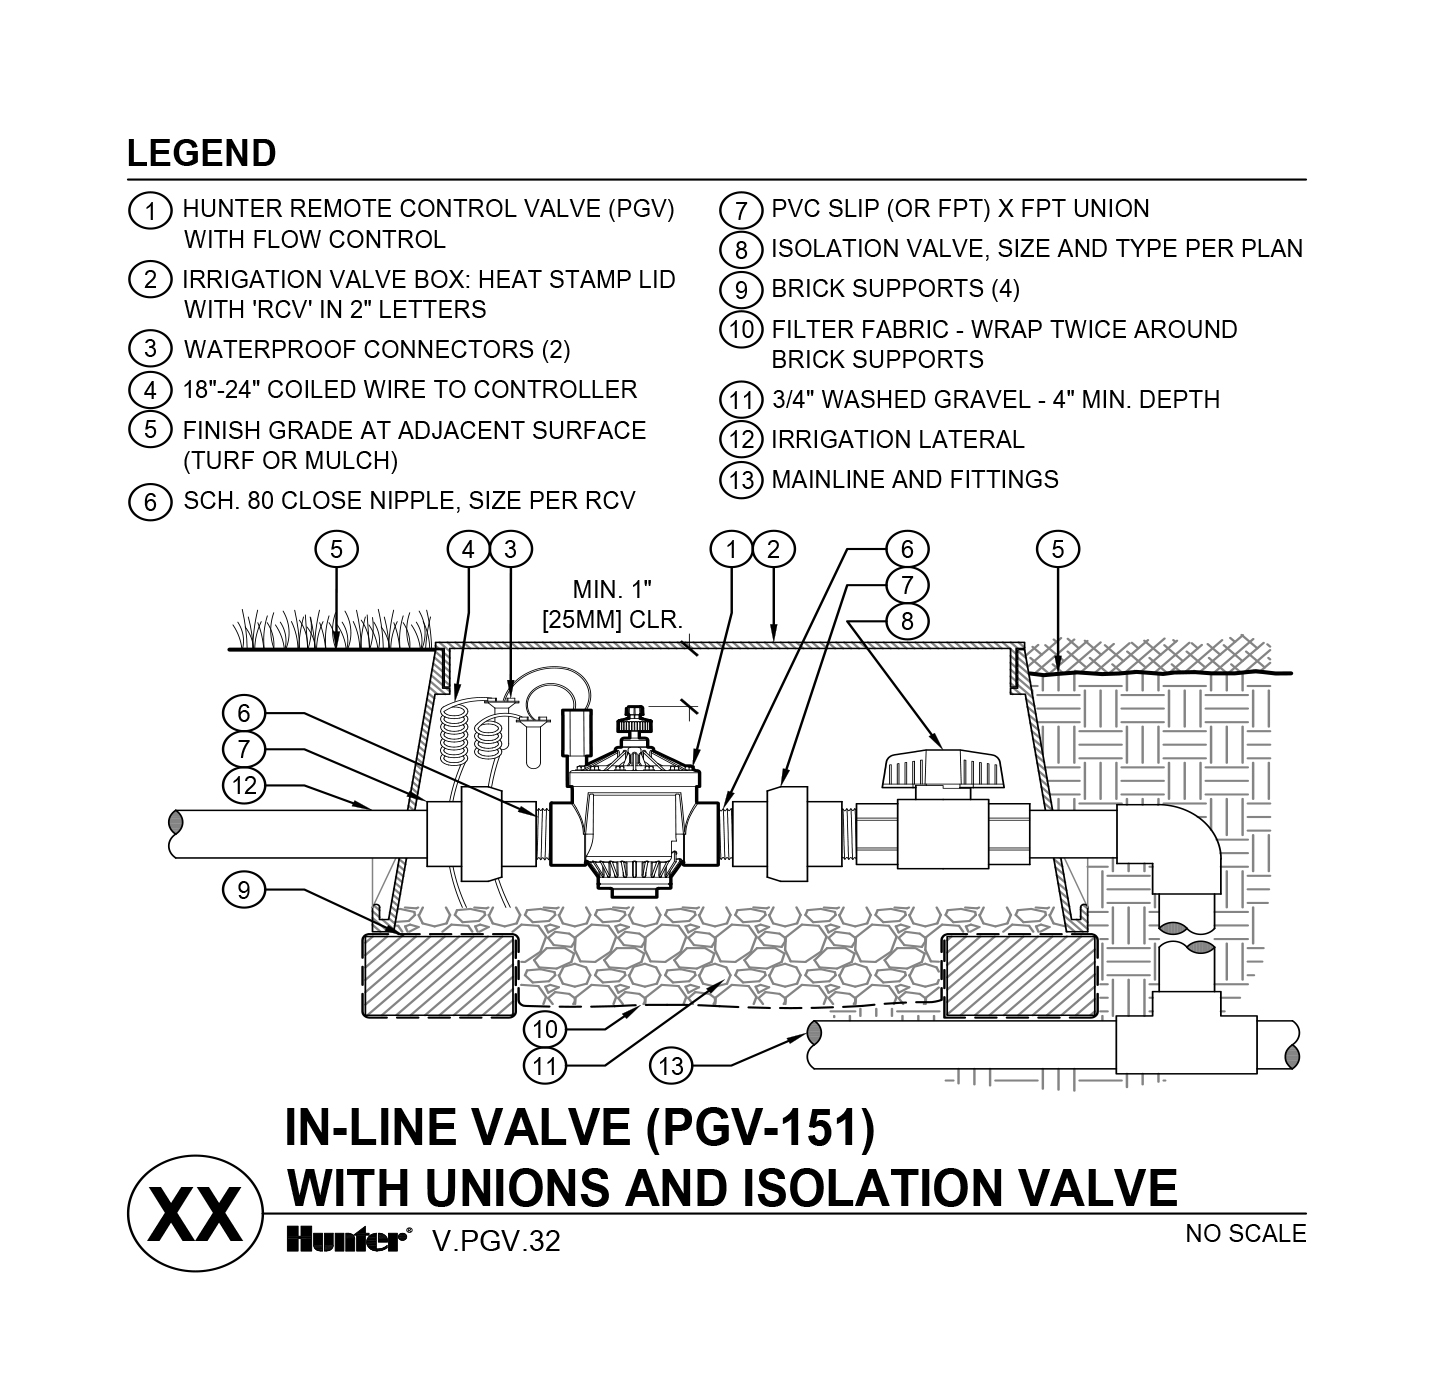 CAD - PGV-151 with unions and shutoff valve